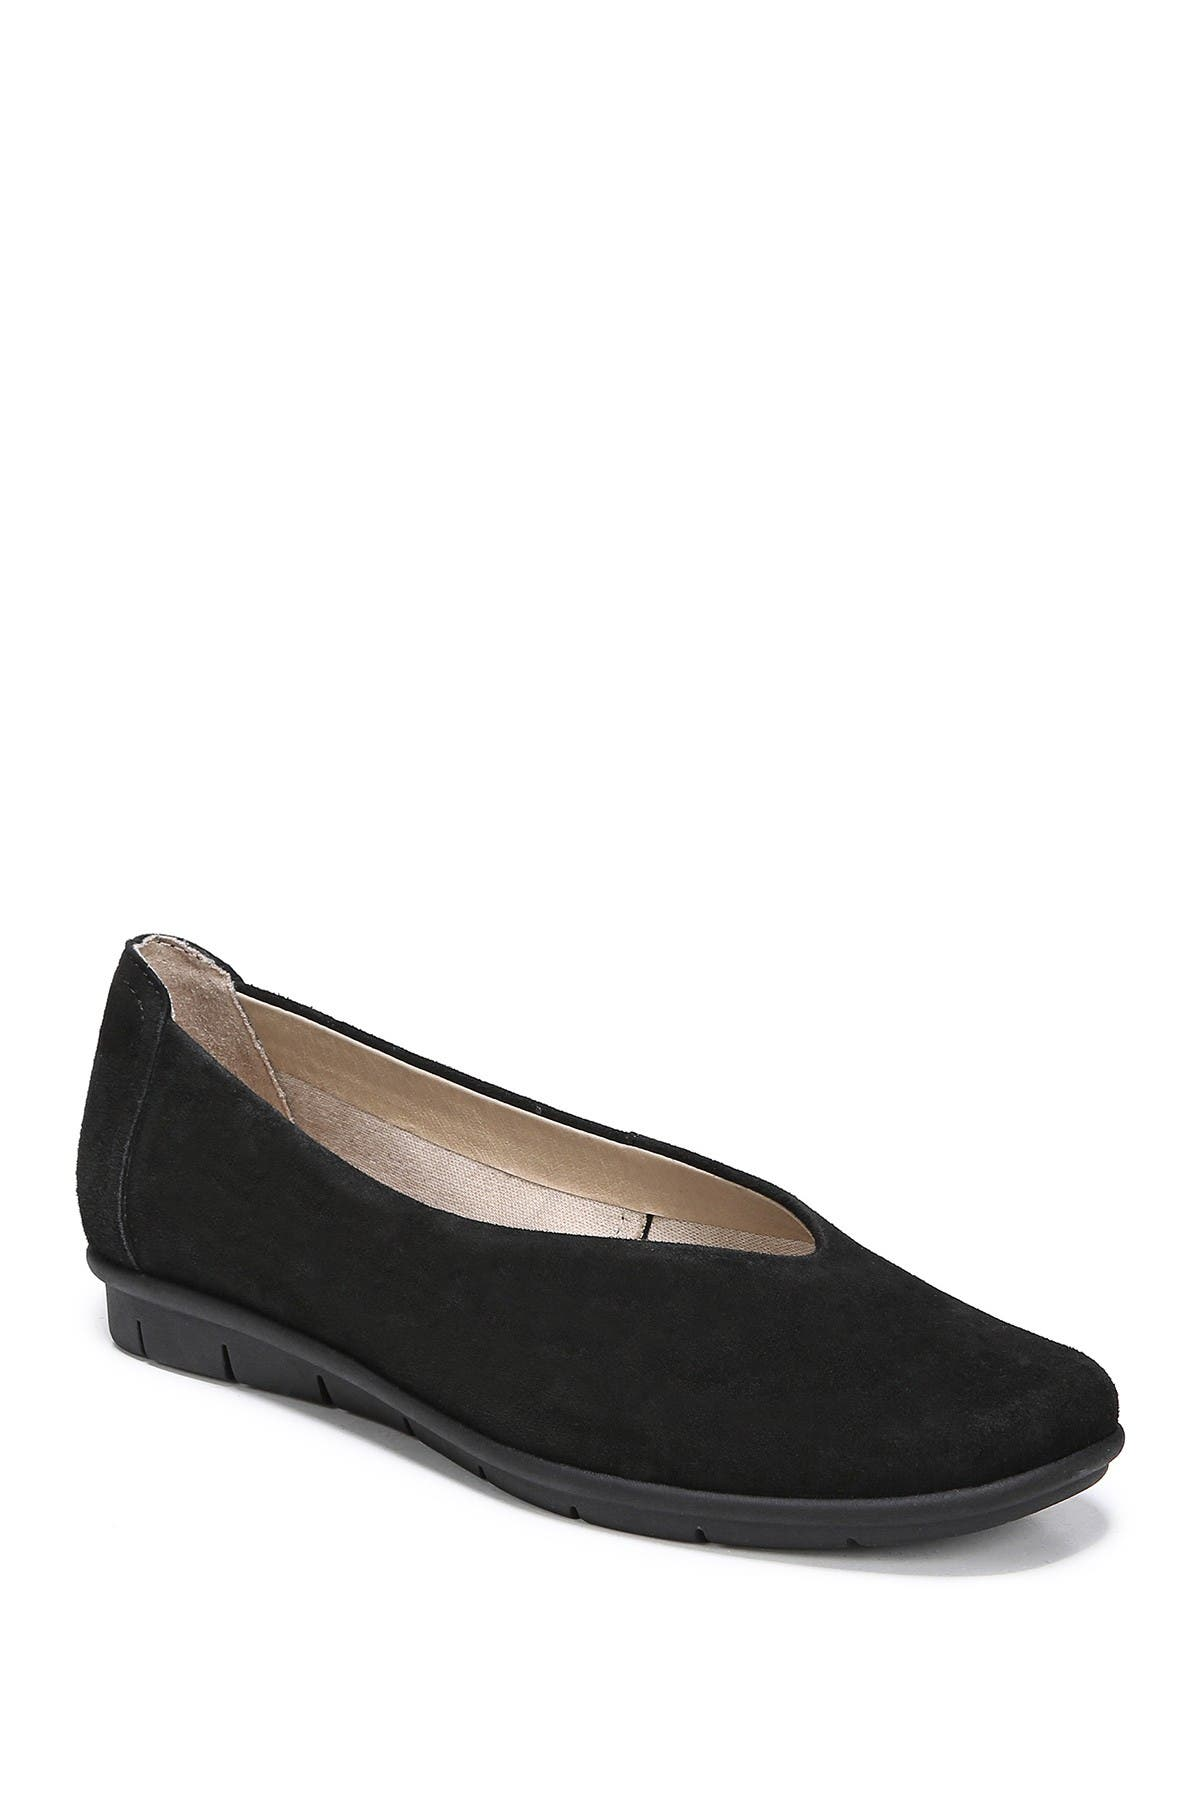 Image of SOUL Naturalizer Leyla Loafer - Wide Width Available